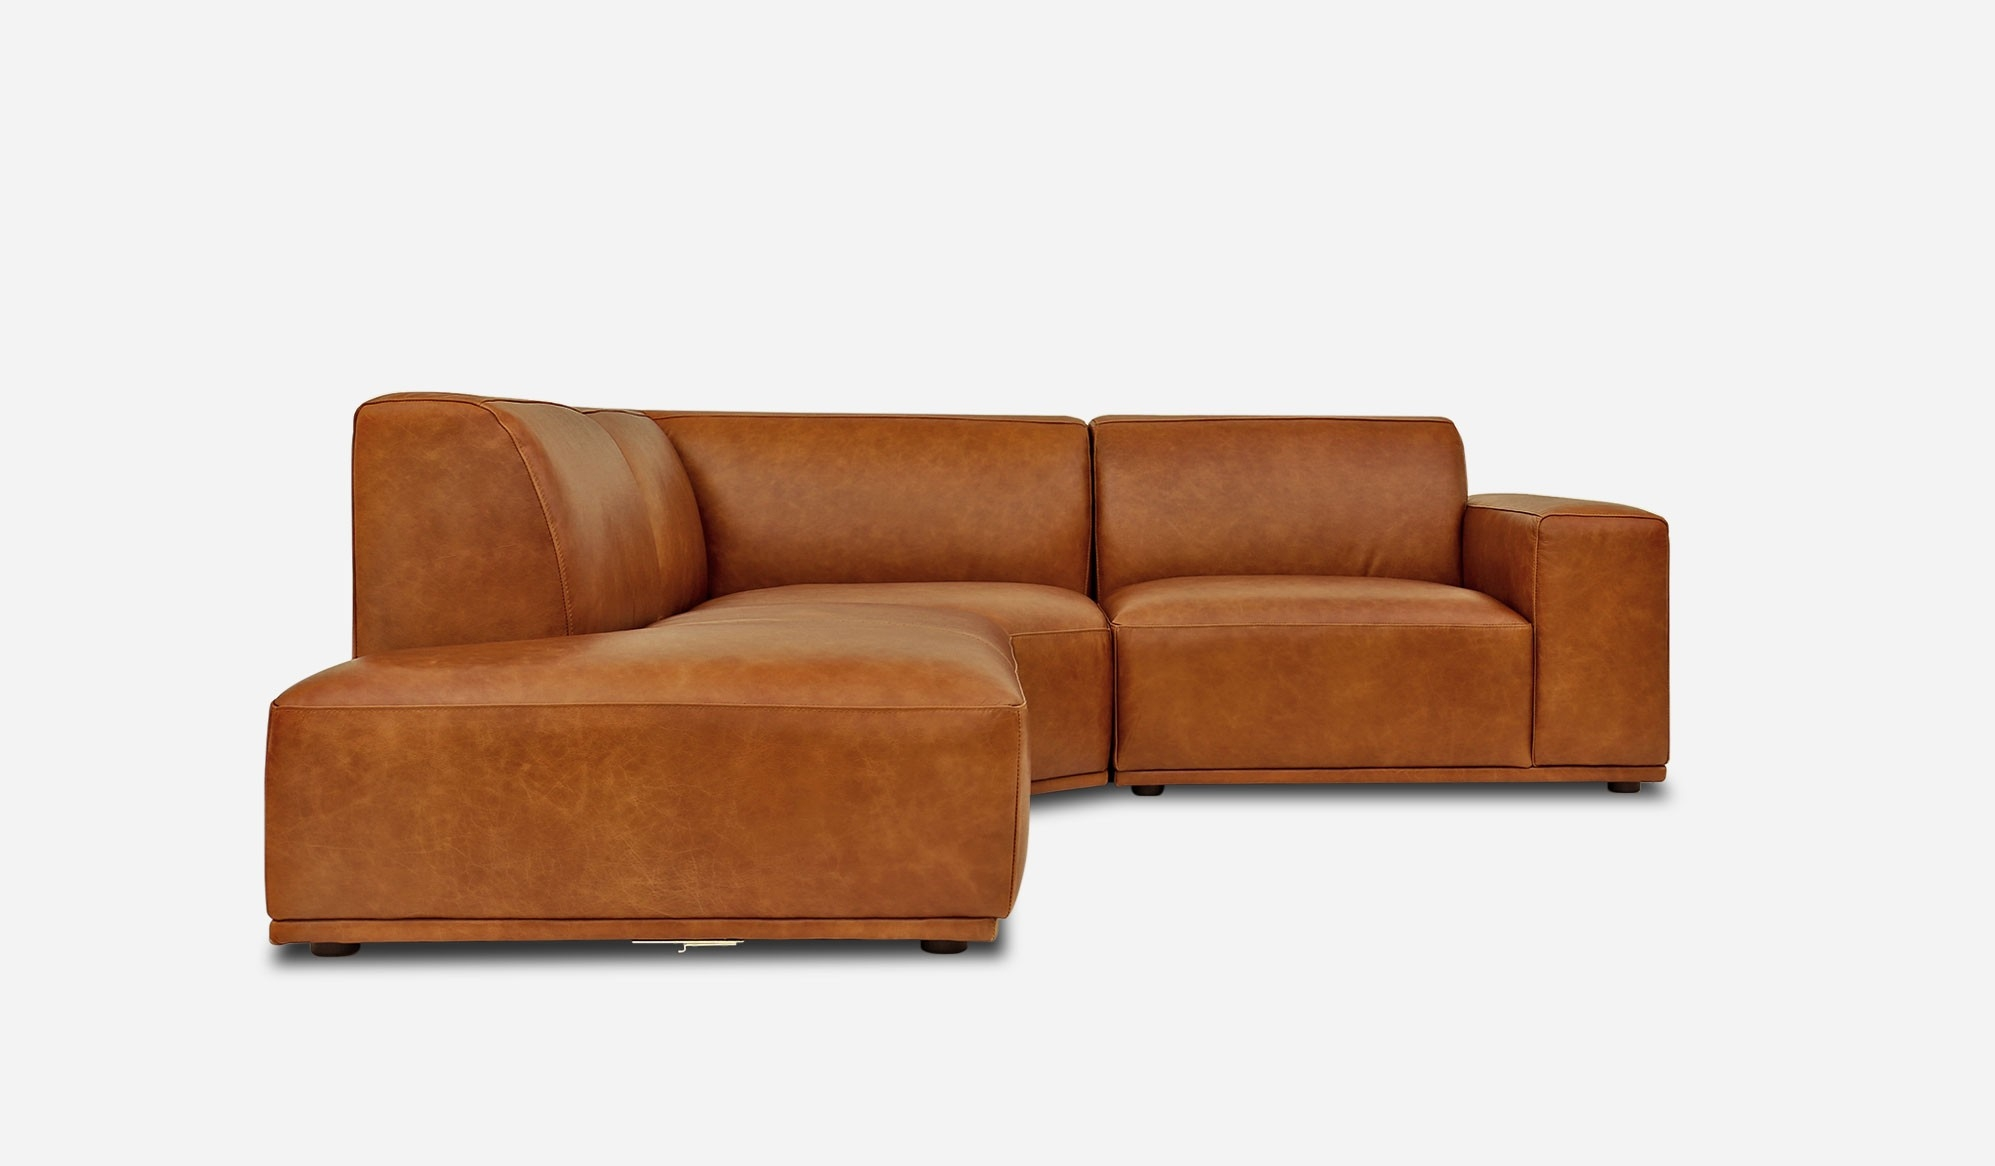 Todd Sectional Chaise Sofa Left Hand Facing Leather Camel Inside Camel Sectional Sofa (View 13 of 15)